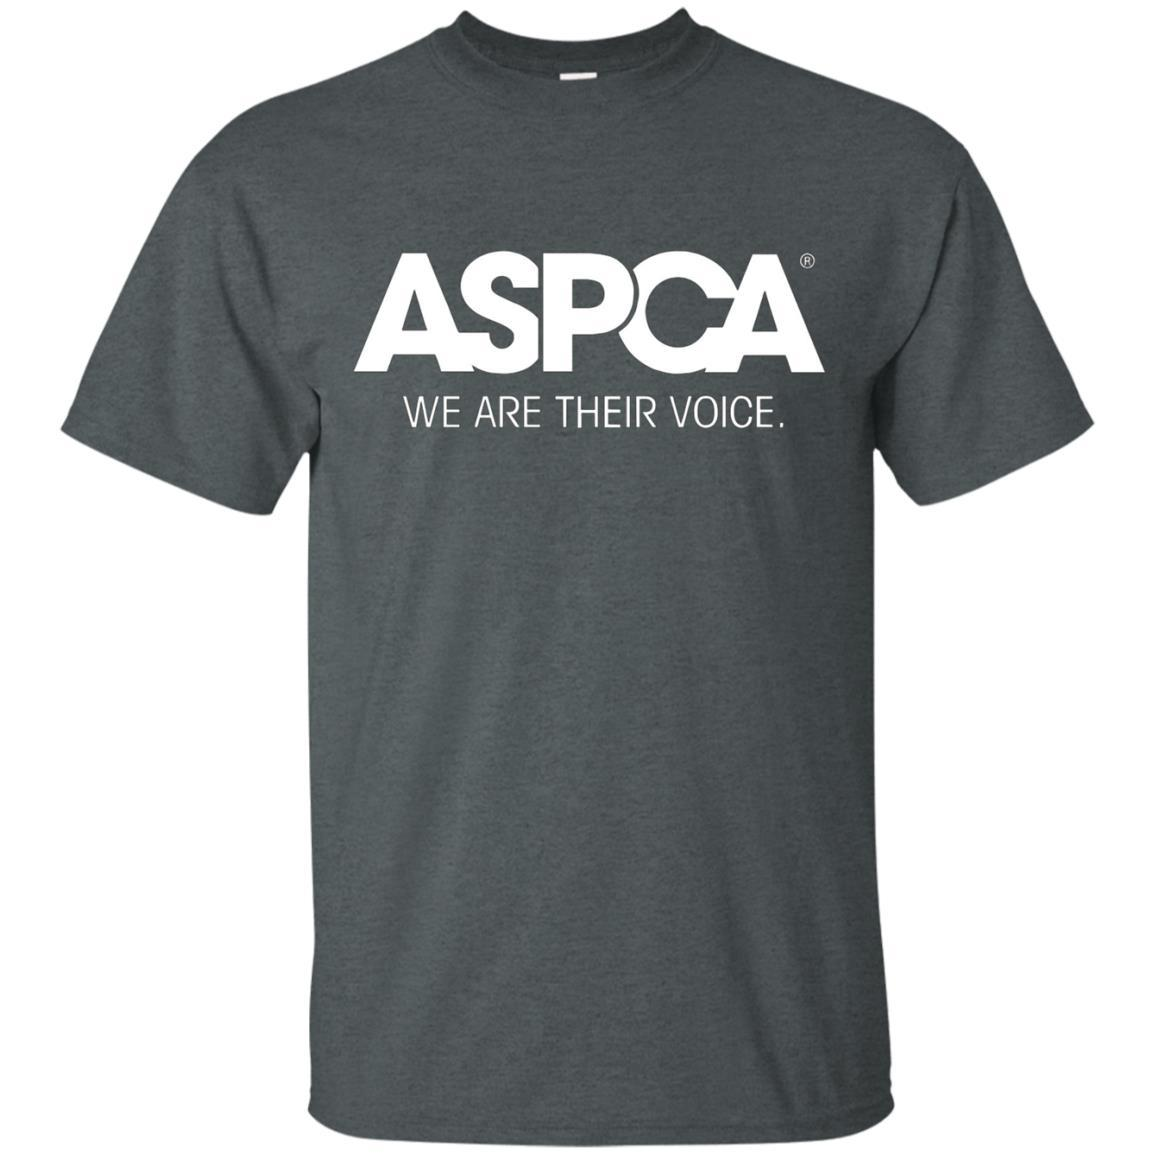 aspca apparel T-Shirt Dark Heather / 5XL